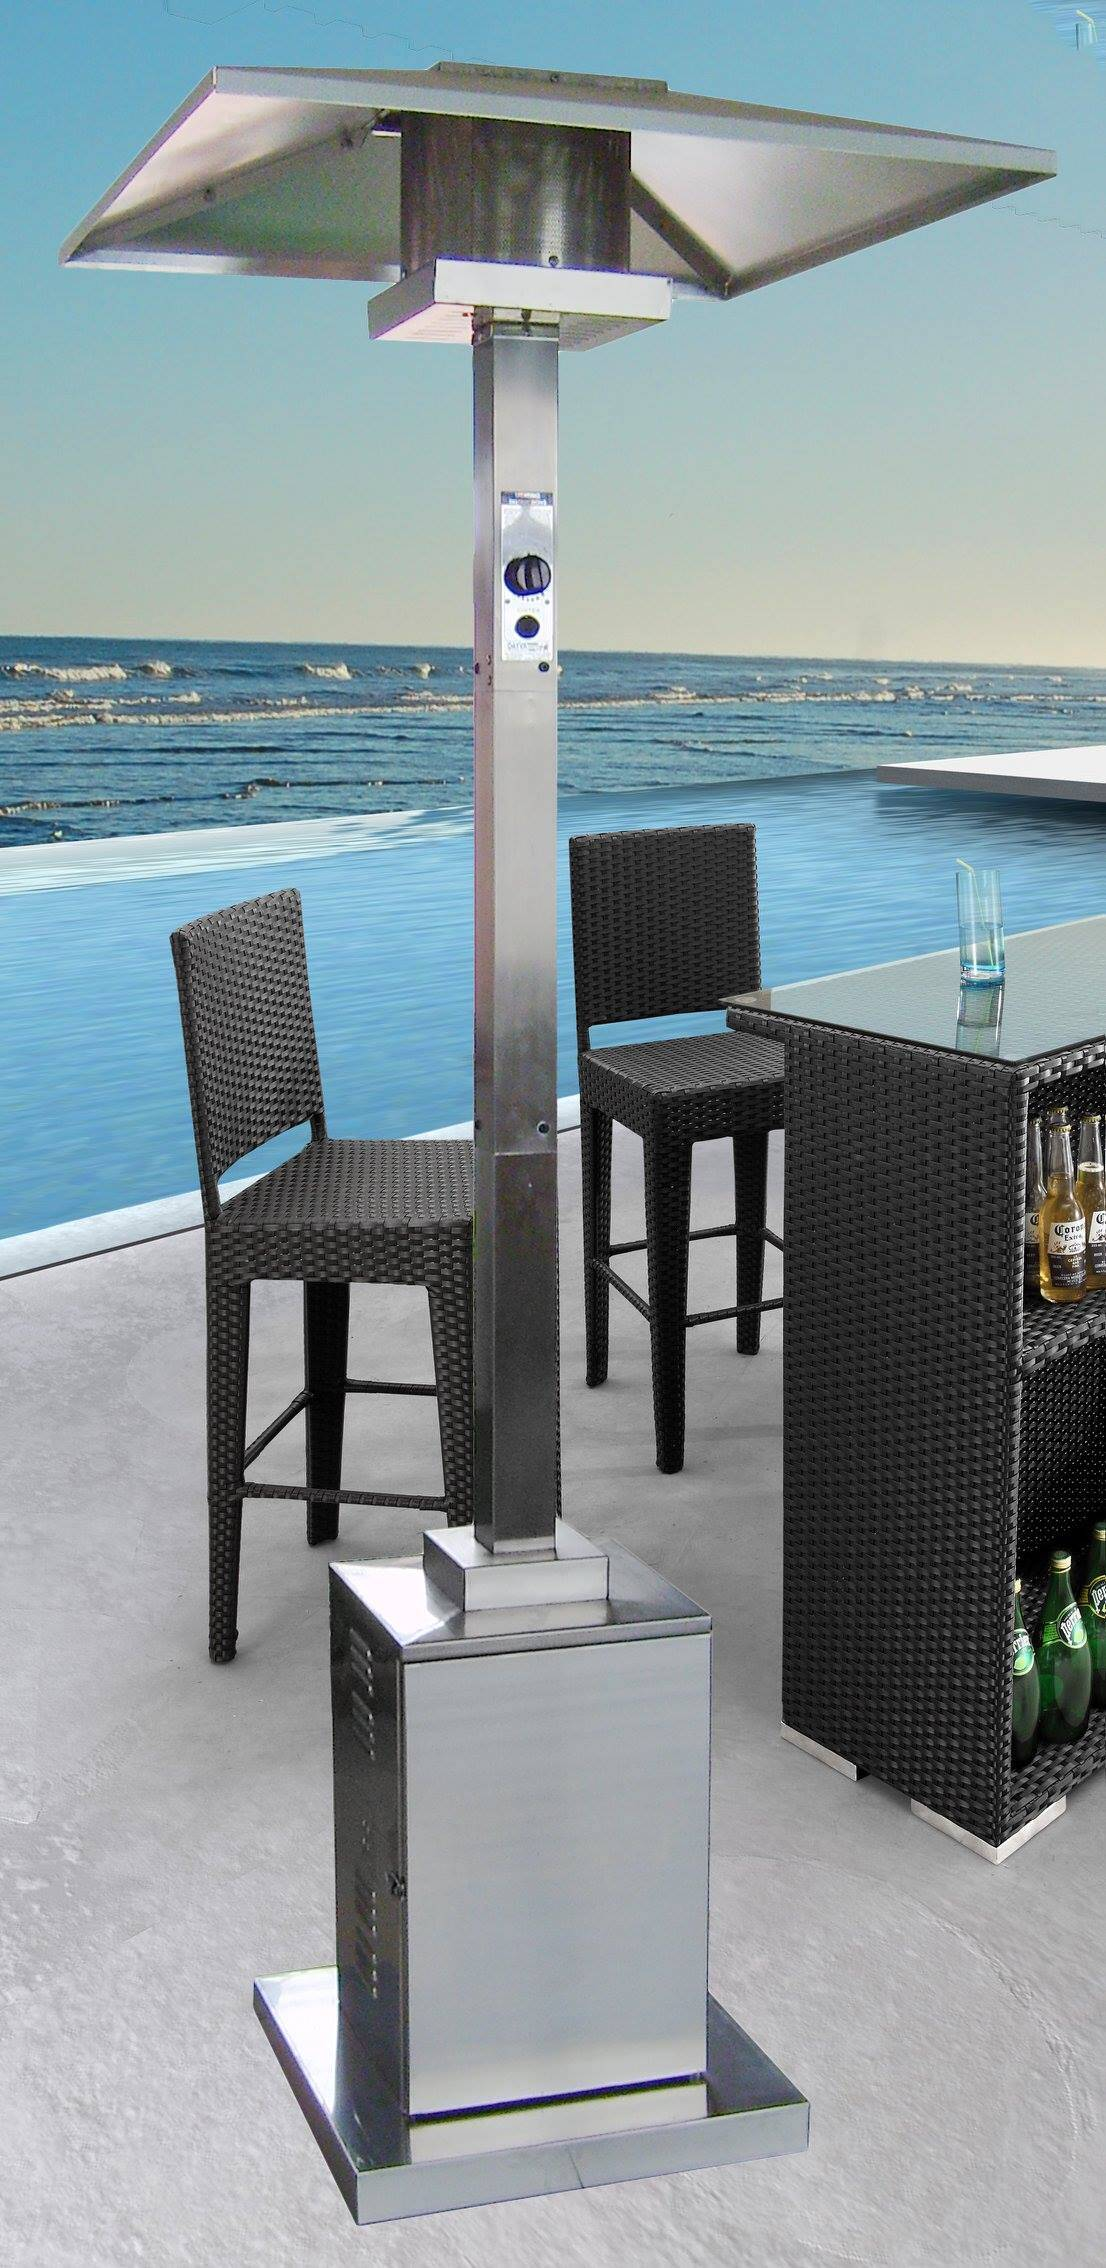 91 Inch Tall mercial Grade Patio Heater Stainless Steel